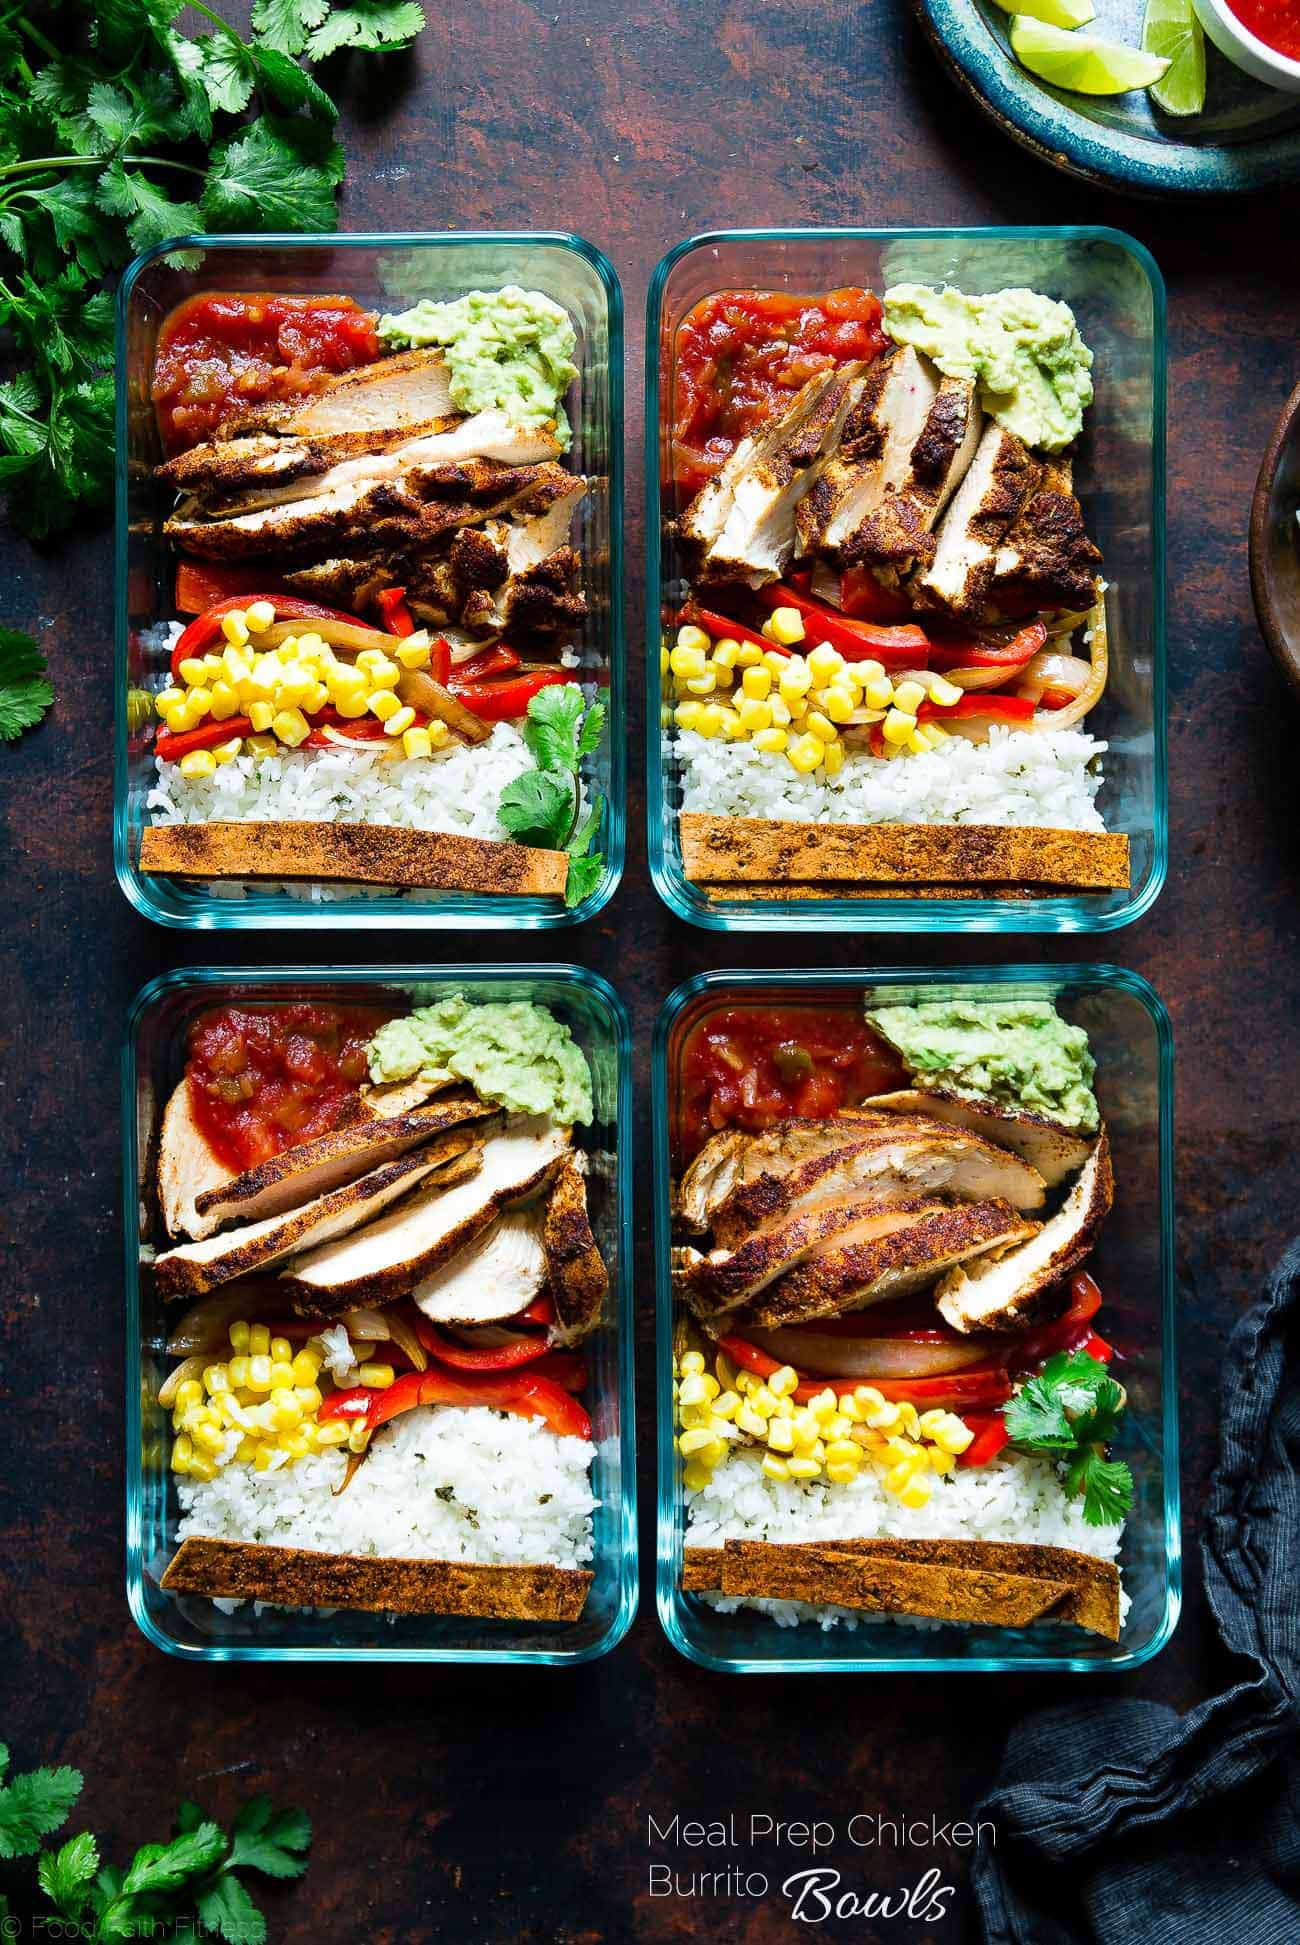 Meal Prep Chicken Burrito Bowls - This healthy, gluten free chicken burrito bowl recipe can be made ahead of time, so it's ready to go for busy days. It's an easy, dairy-free delicious desk lunch option! | Foodfaithfitness.com | @FoodFaithFit